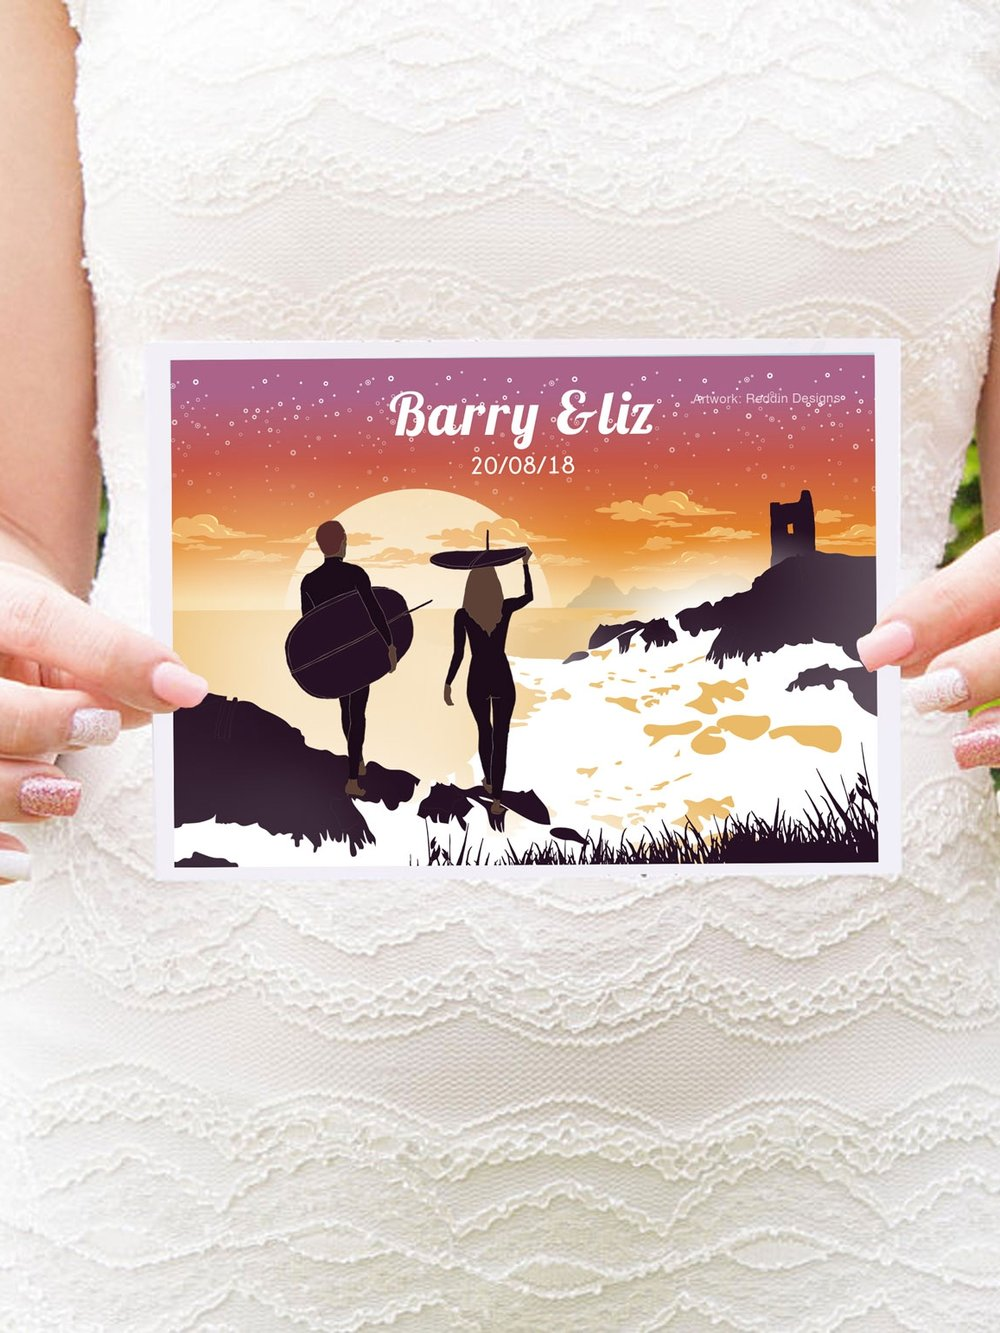 wedding-invites-couple-surfing-ireland.jpg